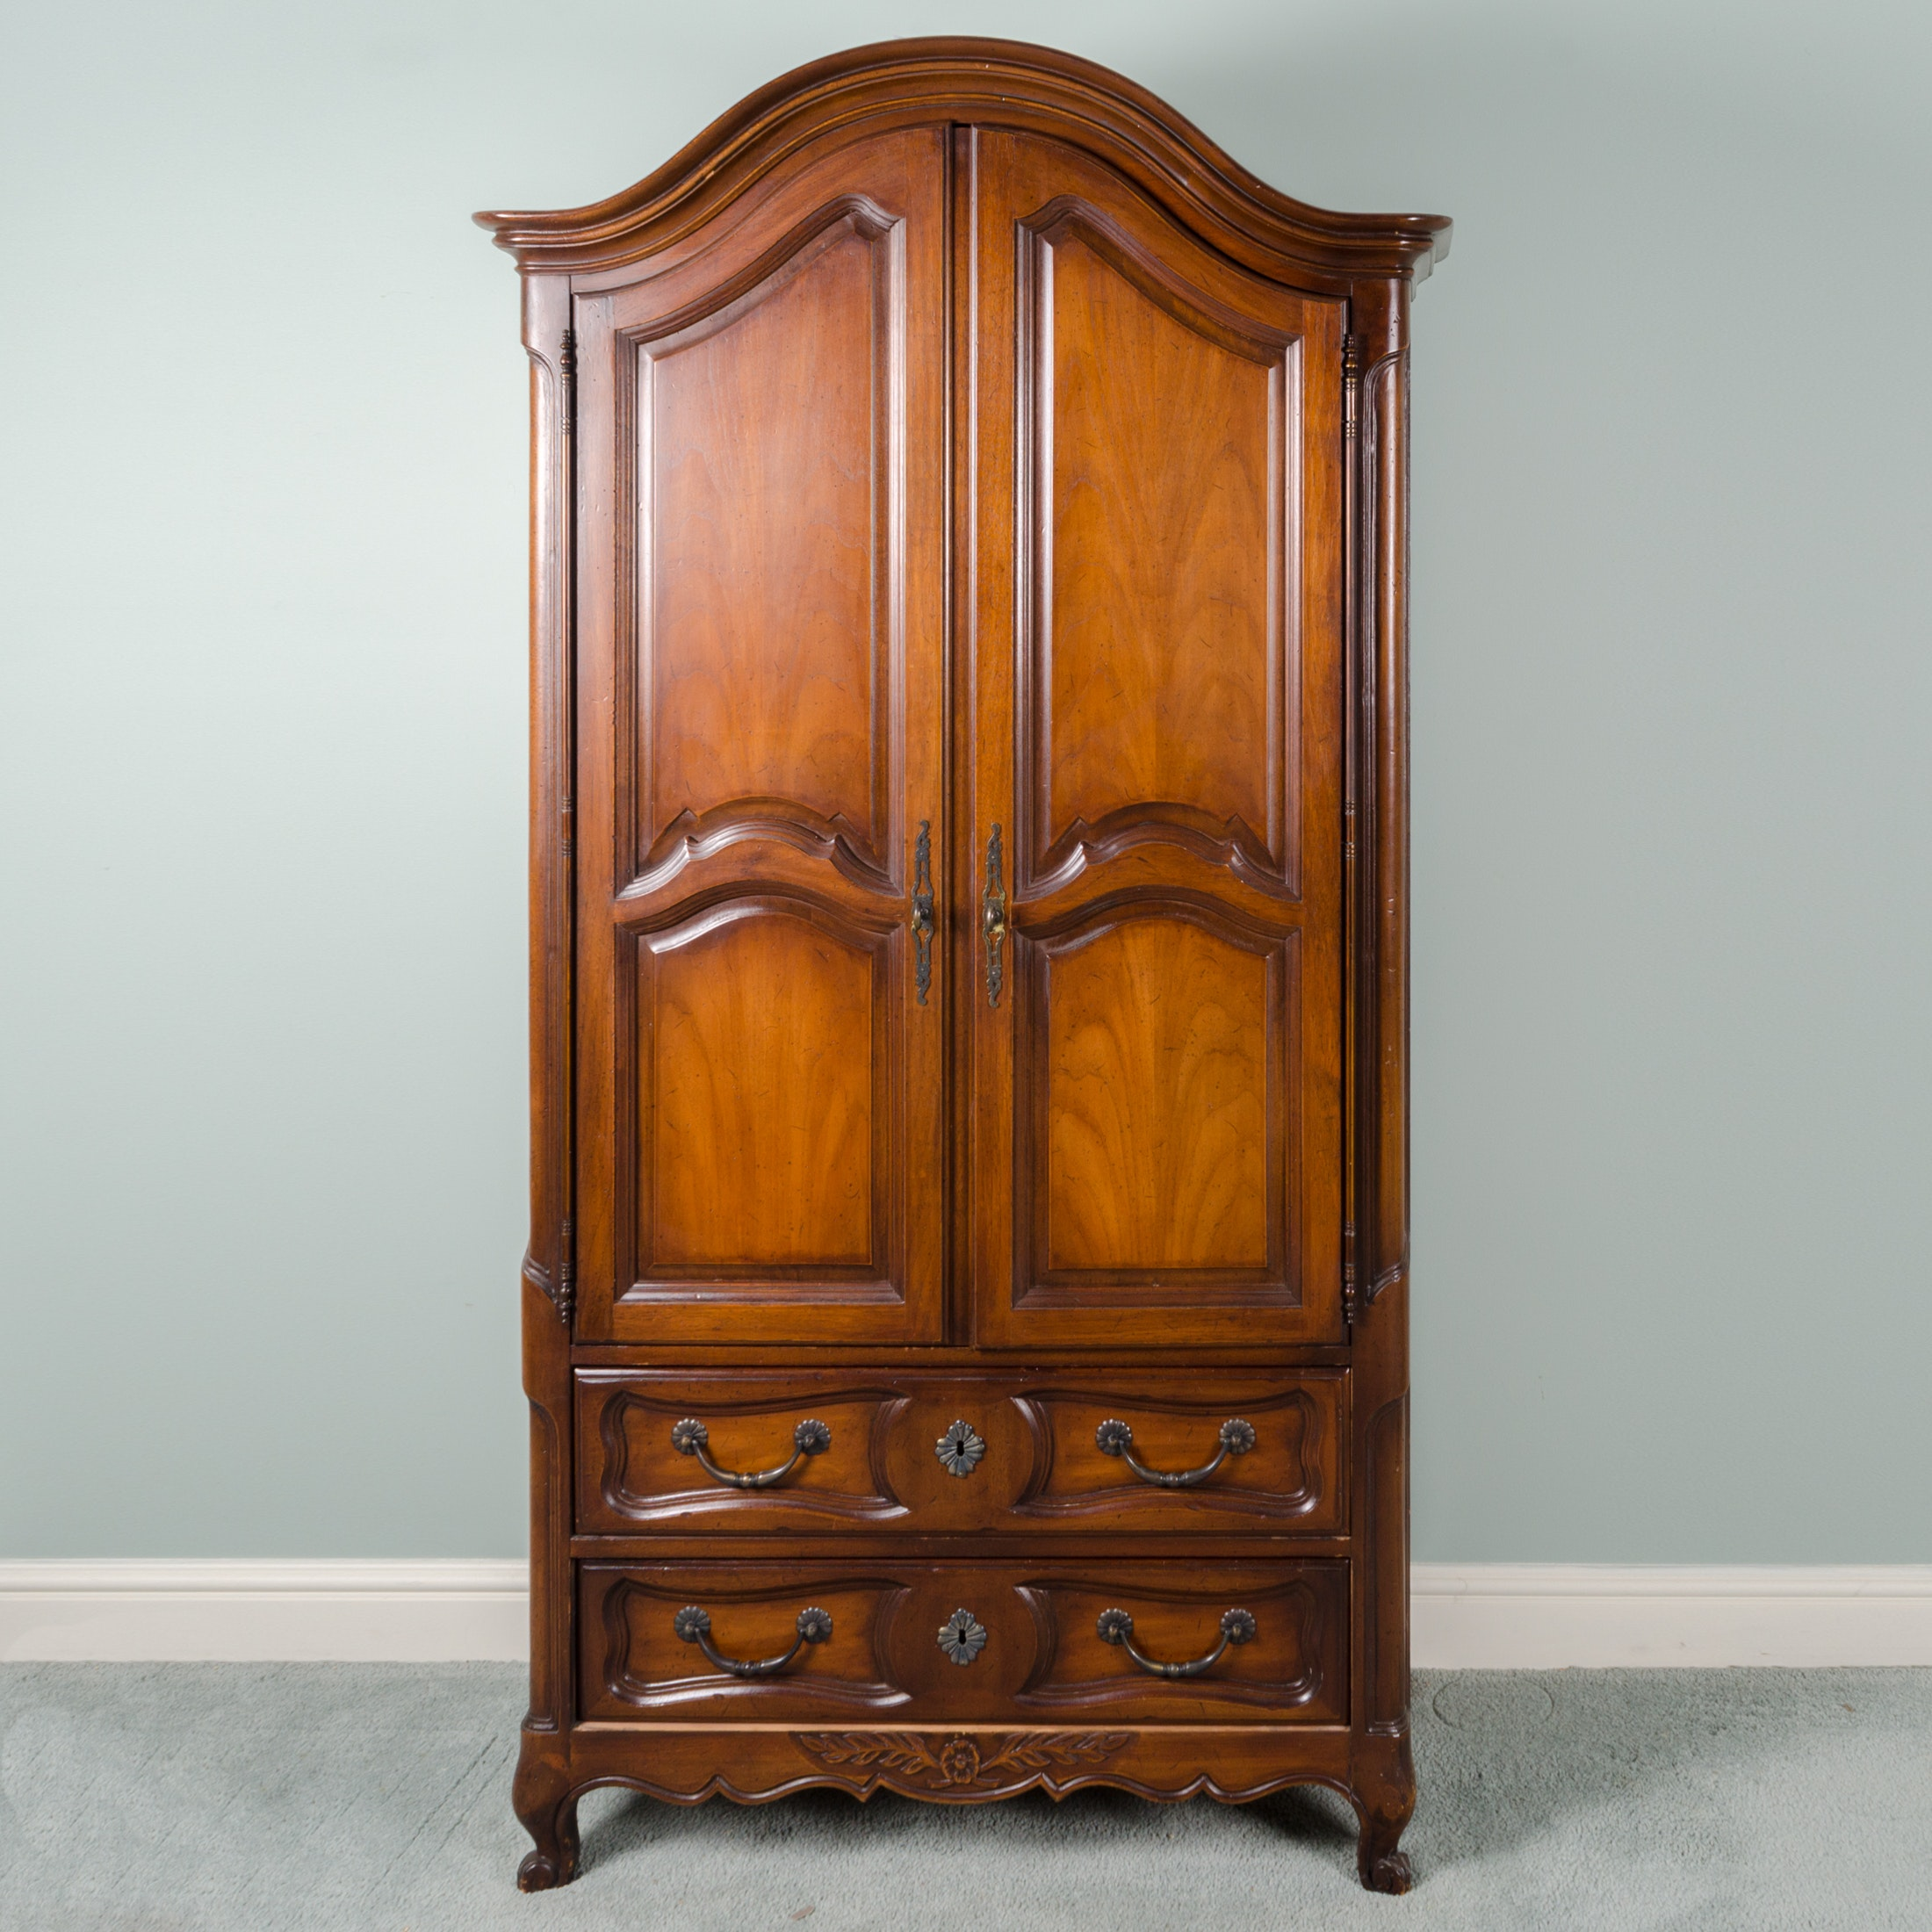 French Provincial Style Wooden Armoire by Drexel